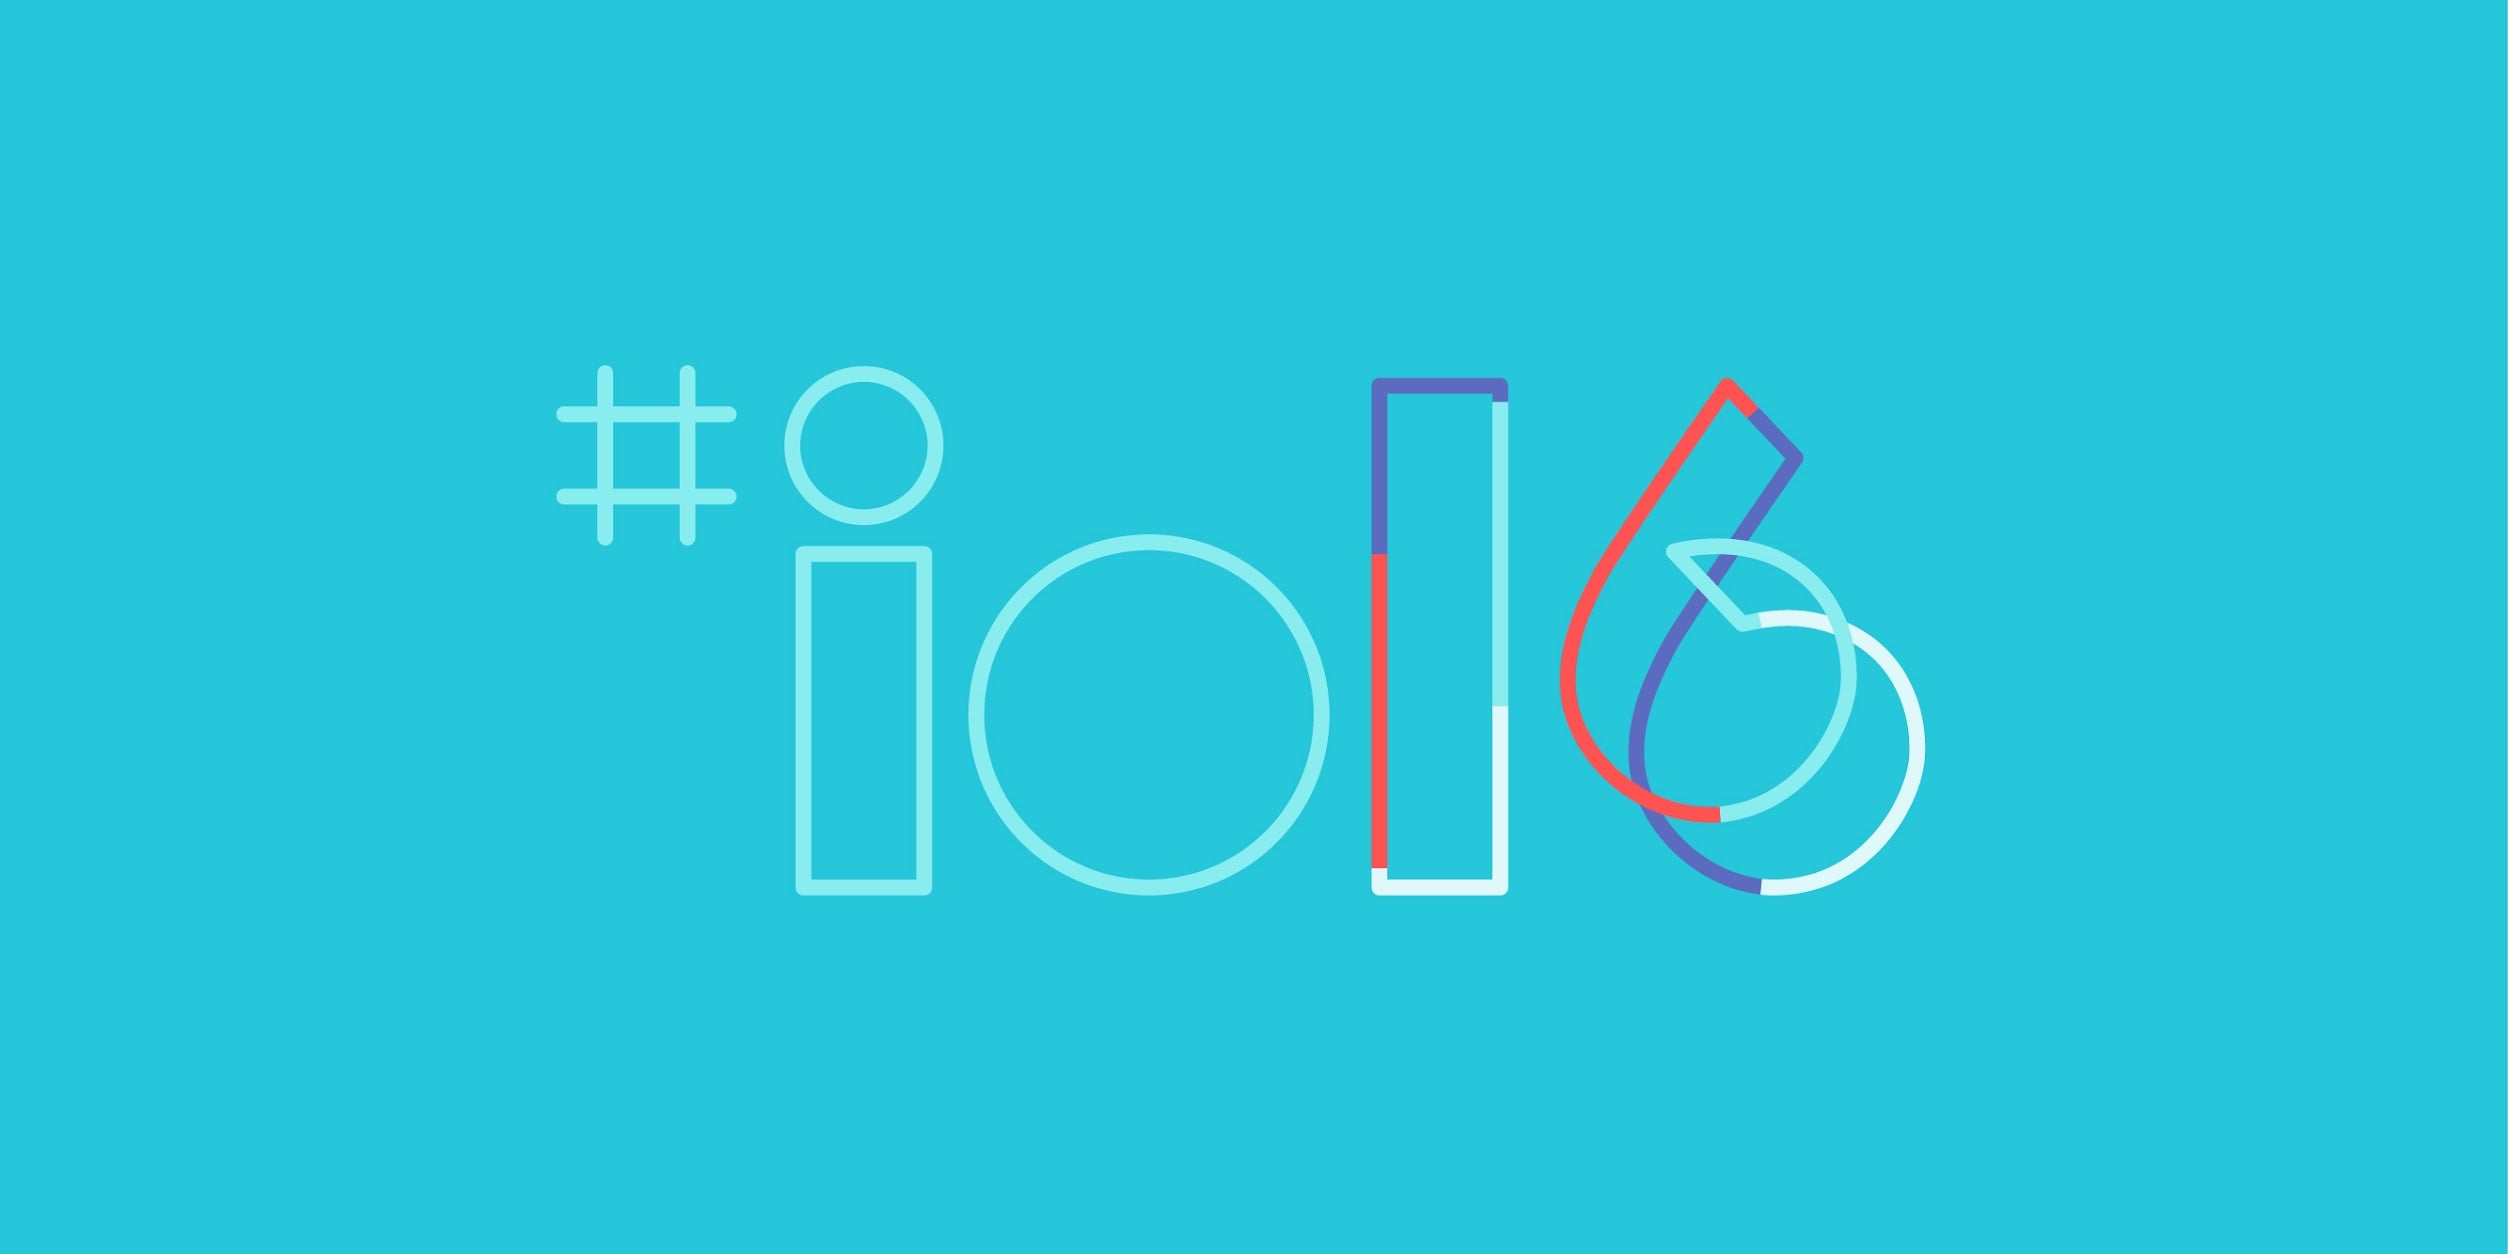 What To Expect From Google I/O 2016